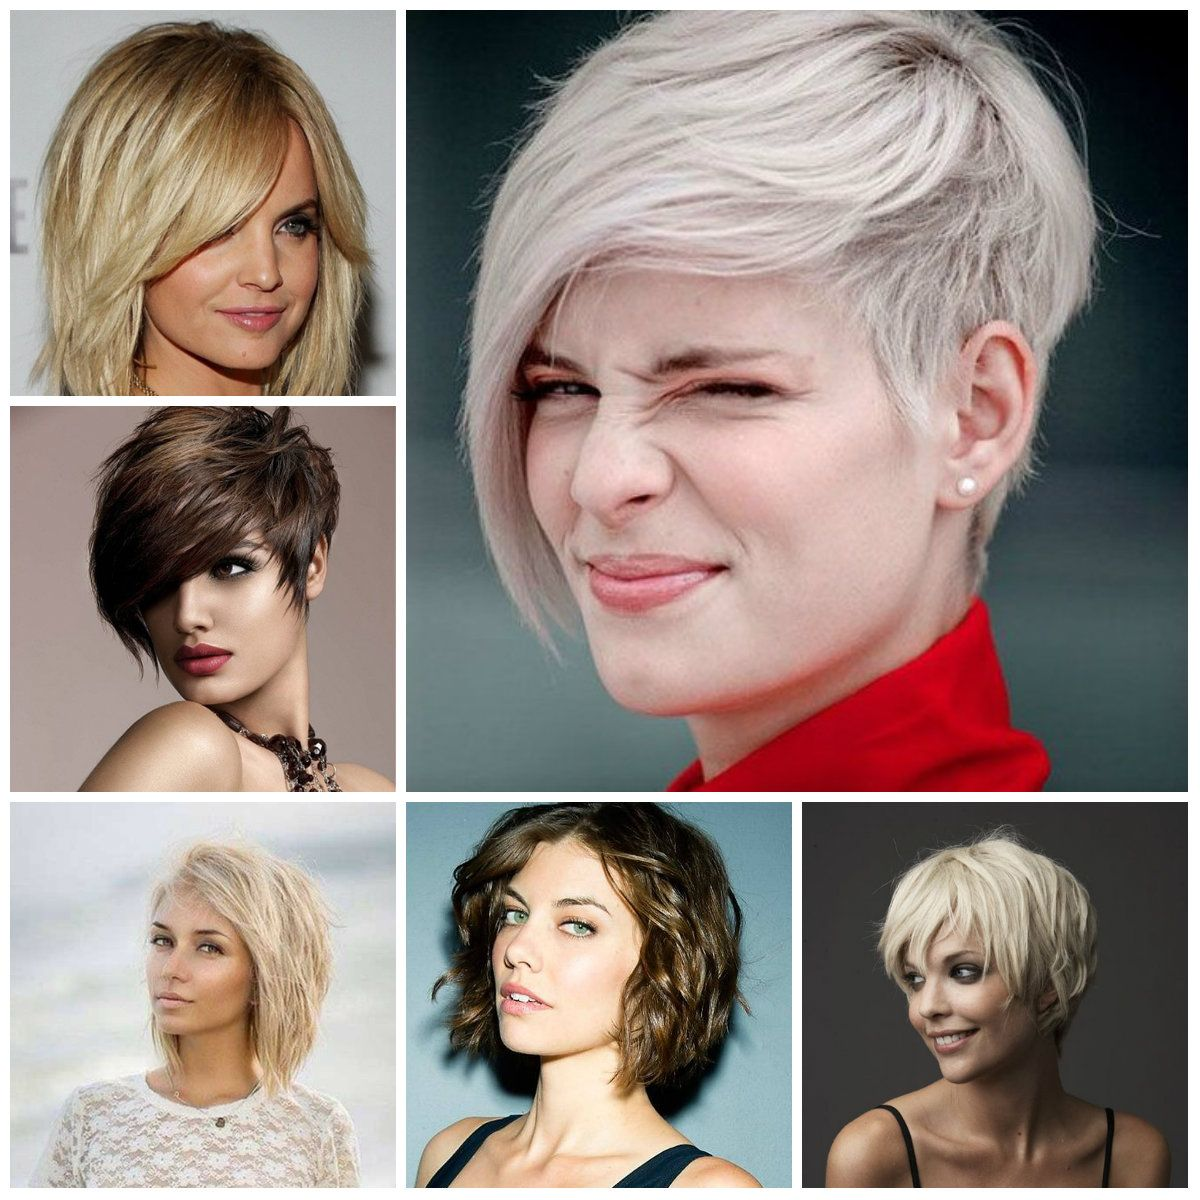 Shortcutehairstylesg pixels hair and beauty